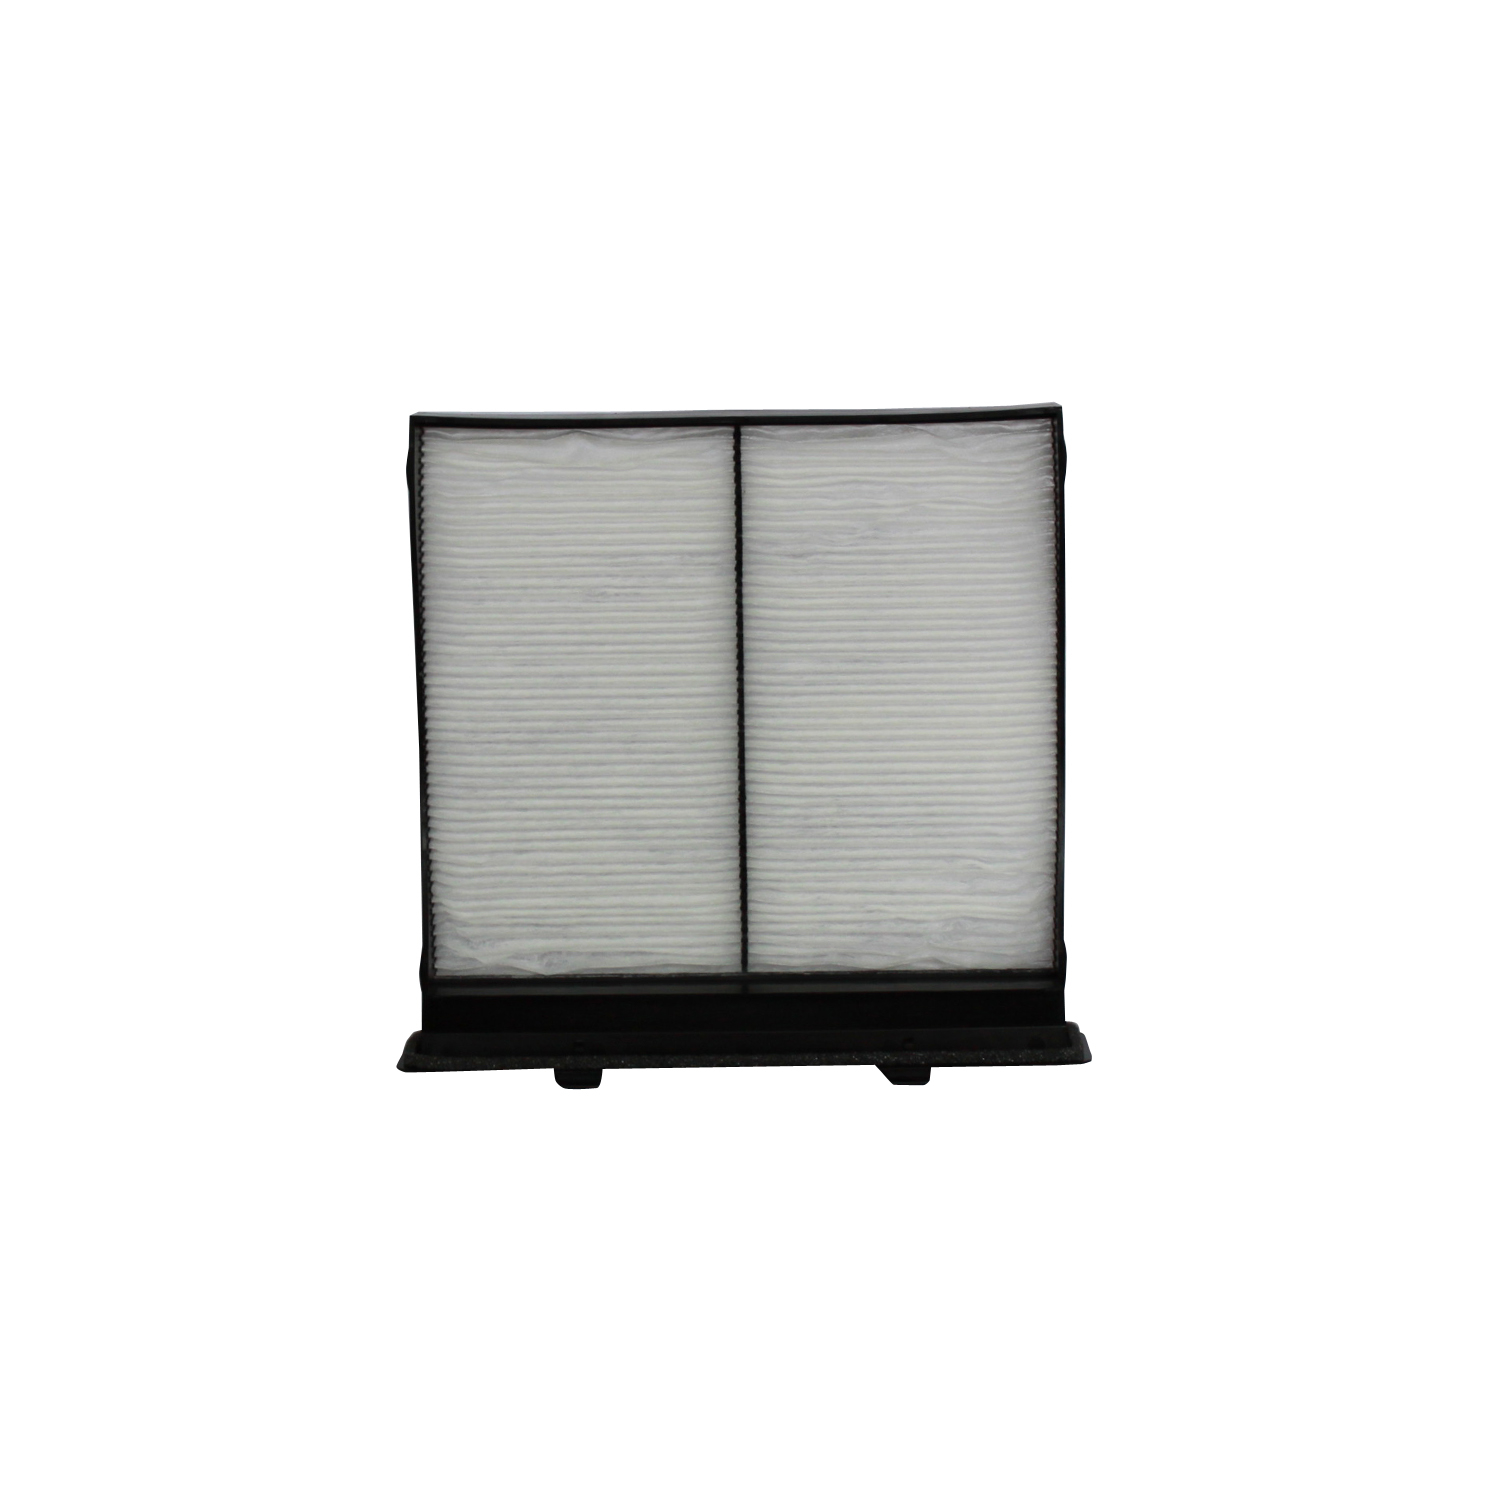 Cabin air filter tyc 800122p fits 09 16 subaru forester 2 for Cabin air filter subaru forester